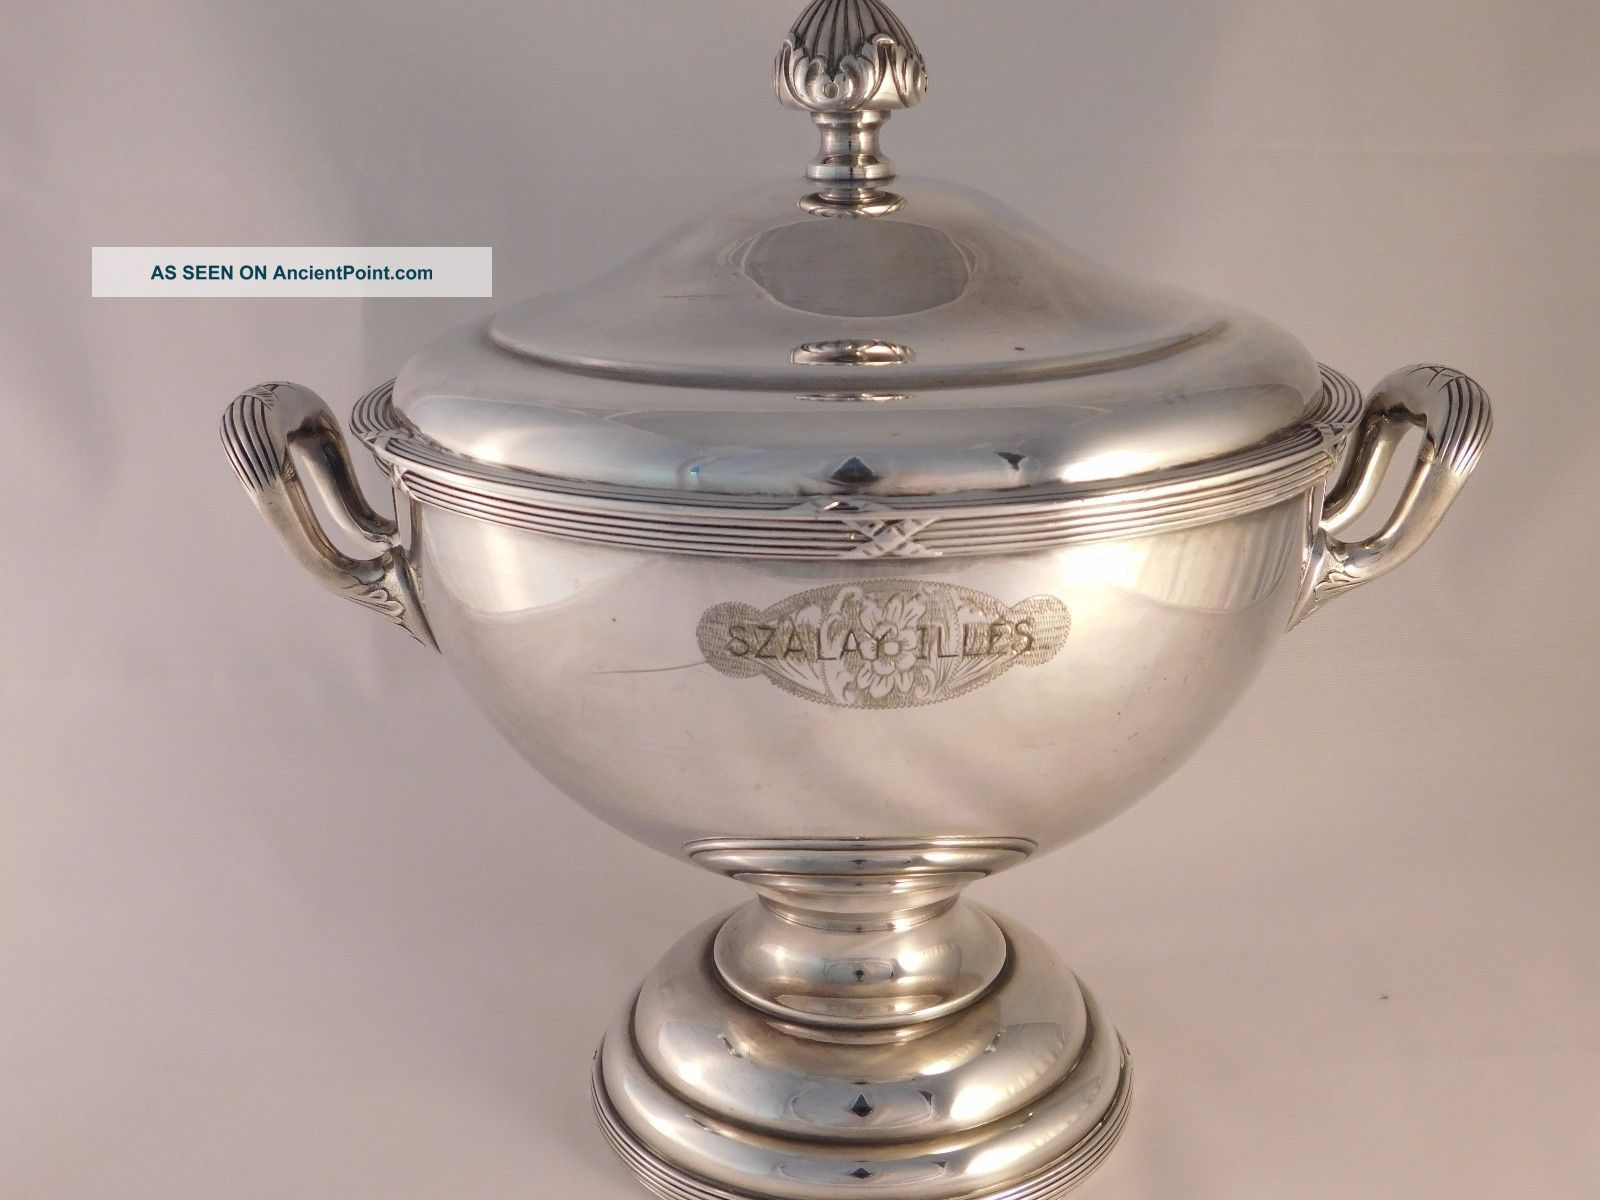 Wellner German Silver Art Nouveau Hotel Soup Tureen Circa 1910 Spectacular Other Antique Silverplate photo